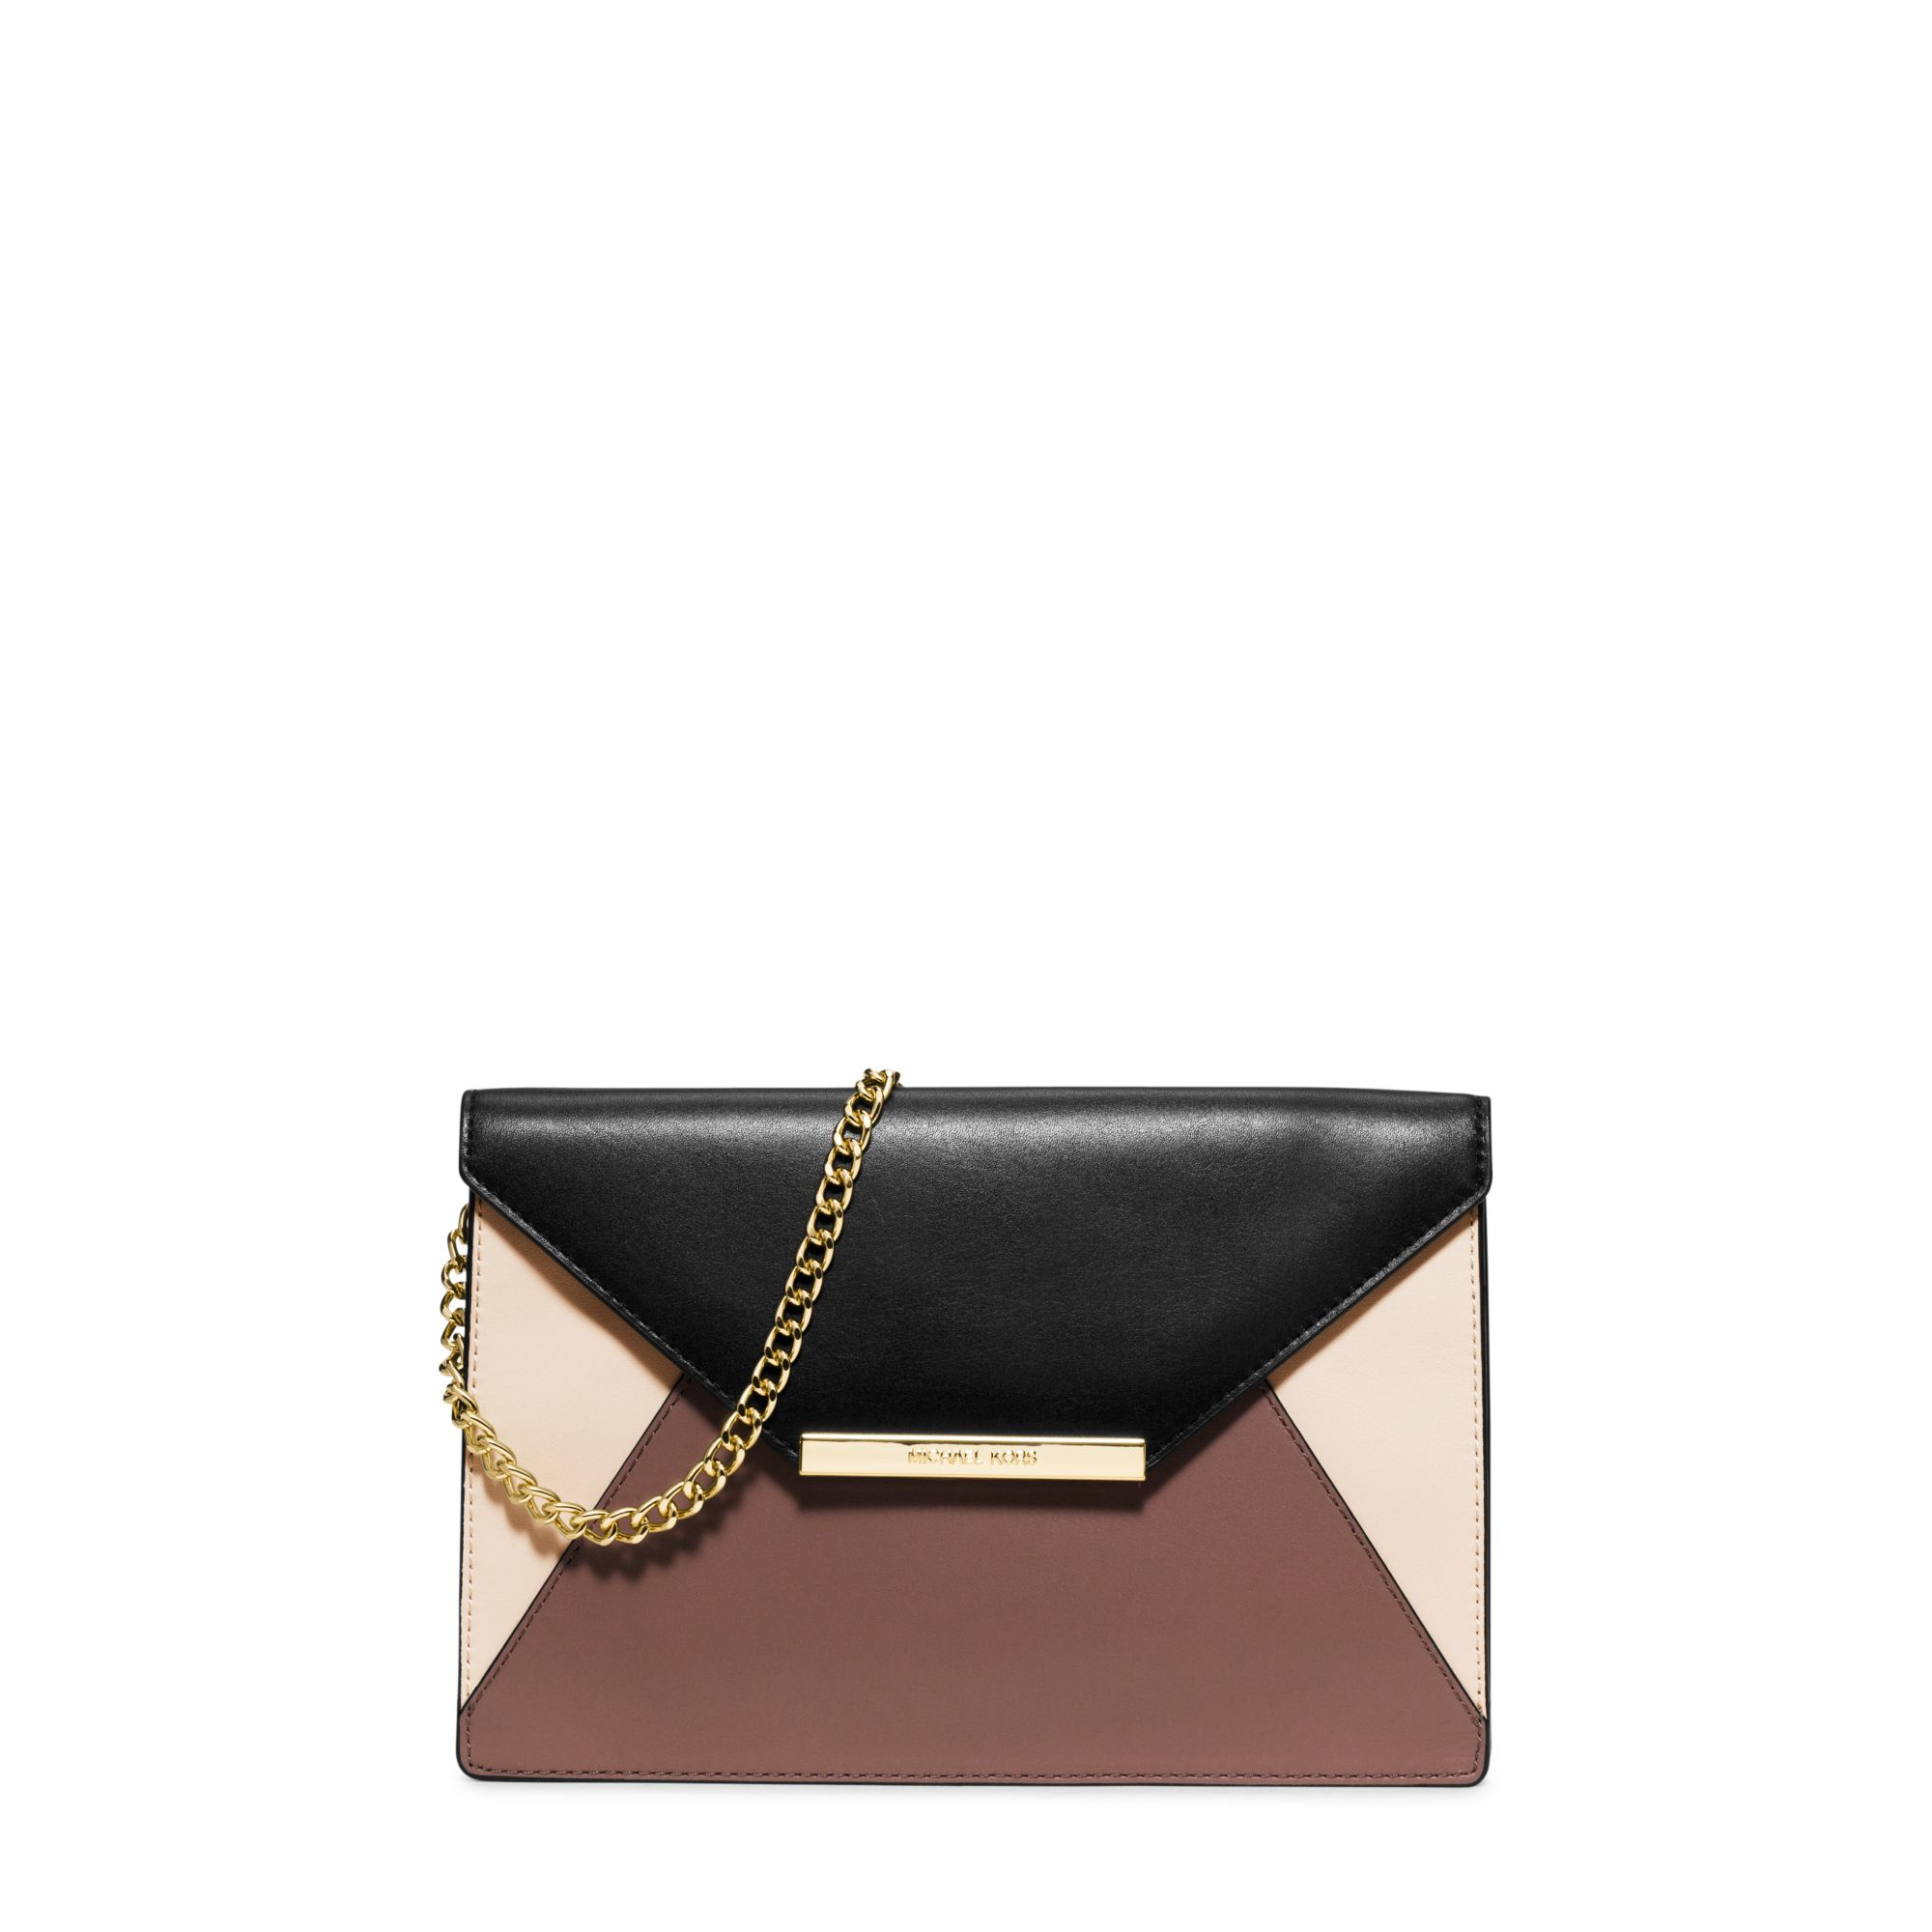 7a7ac785ecfe3b Michael Kors Lana Color-block Leather Envelope Clutch in Pink - Lyst